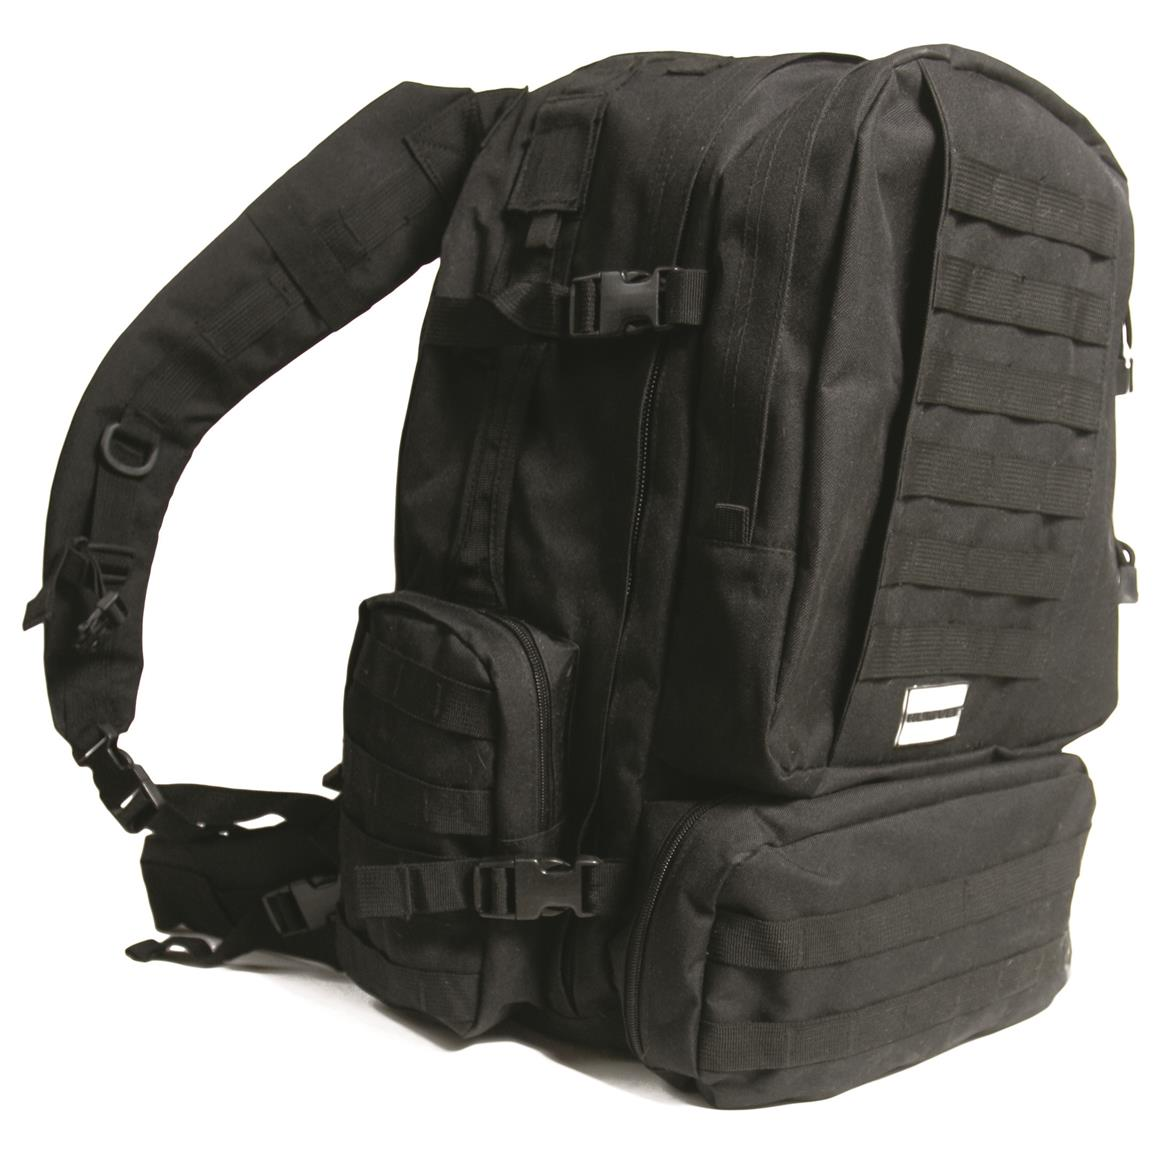 Humvee 3-Day Assault Backpack, Black, Side